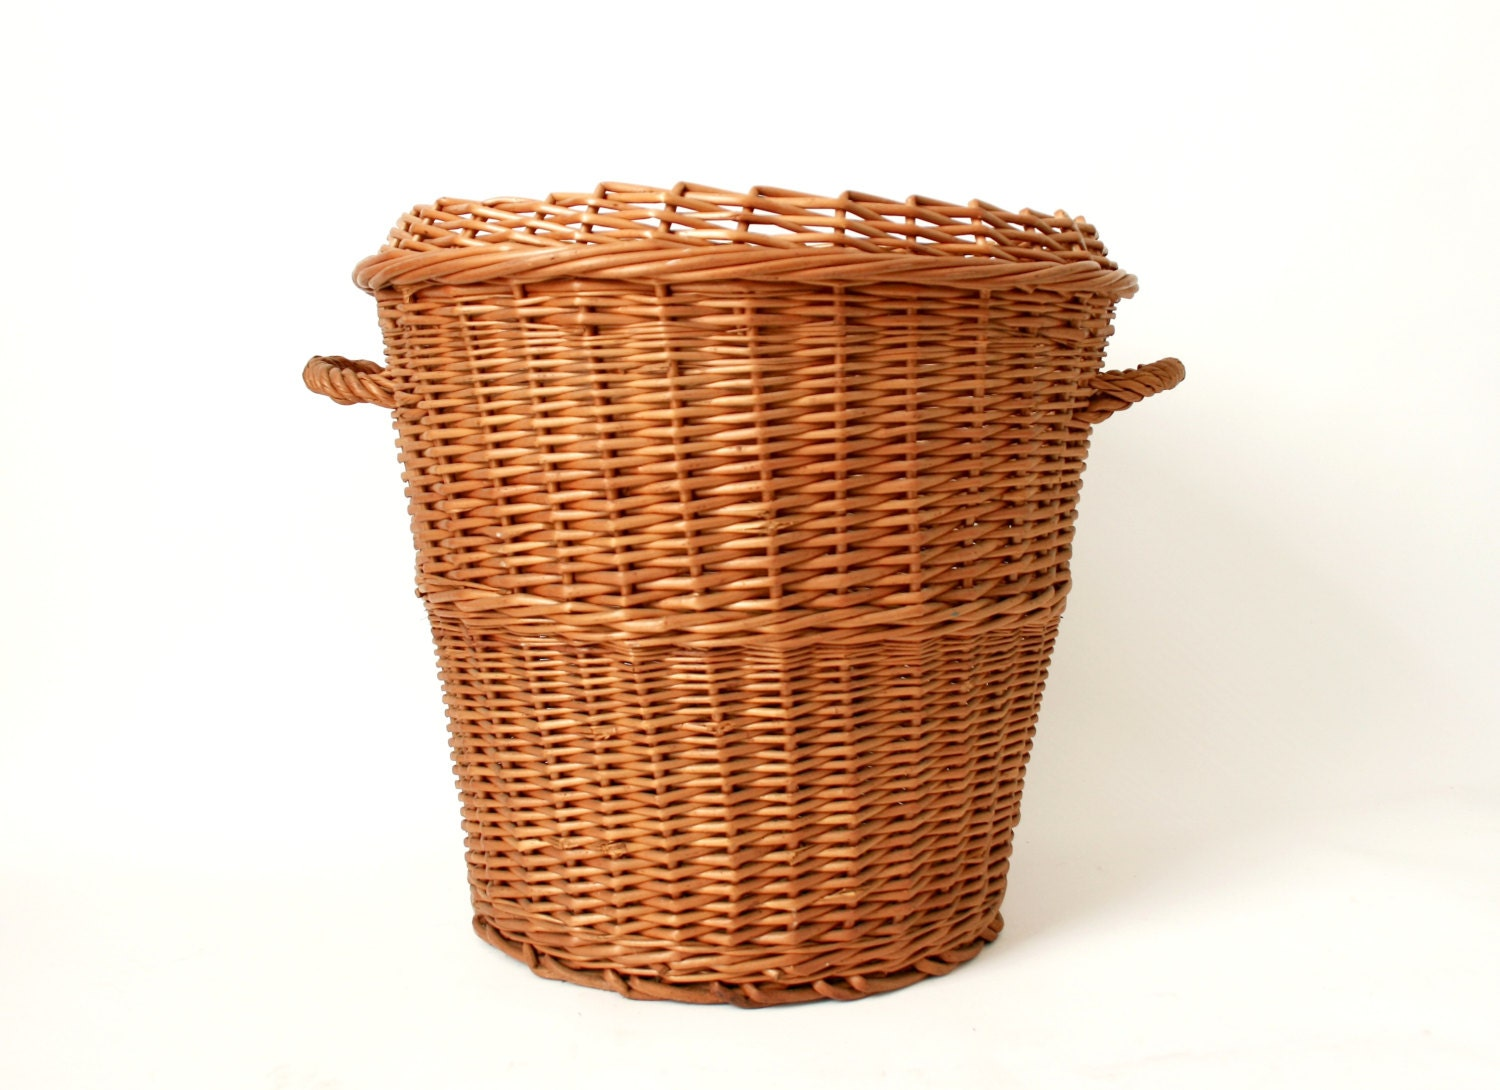 Vintage Round Wicker Hamper ... Basket Toy Storage Laundry